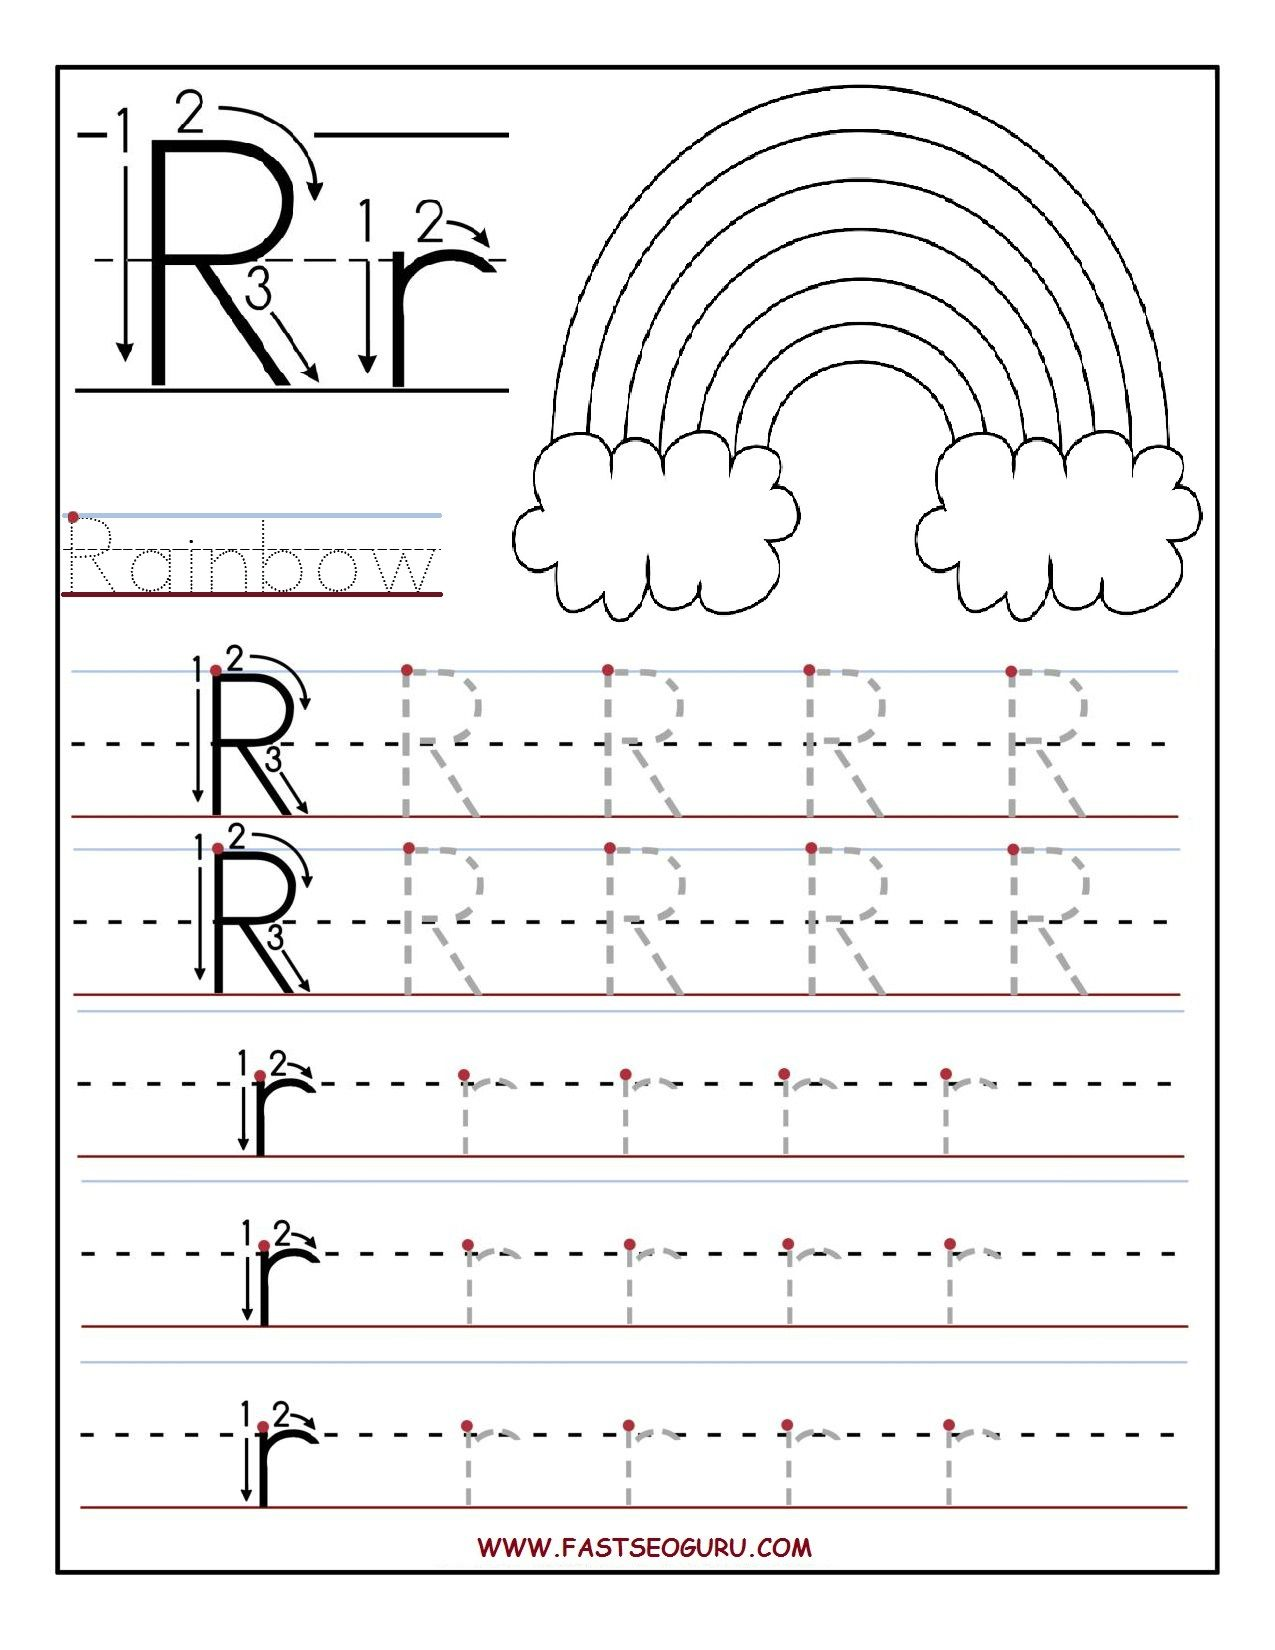 Printable letter R tracing worksheets for preschool ...